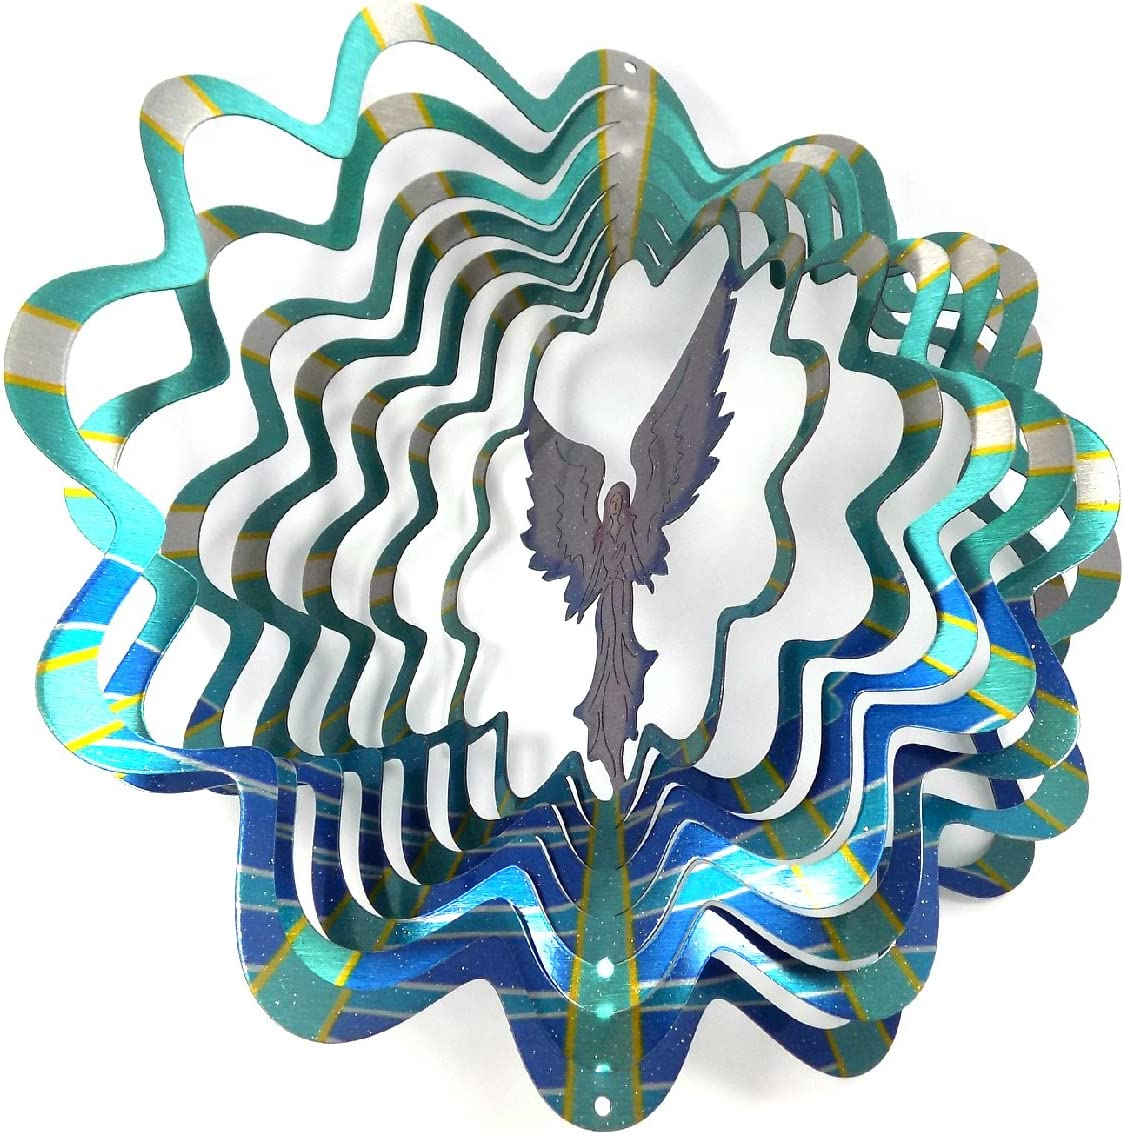 WorldaWhirl Whirligig 3D Wind online shopping Spinner Painted Ste Ranking TOP13 Stainless Hand